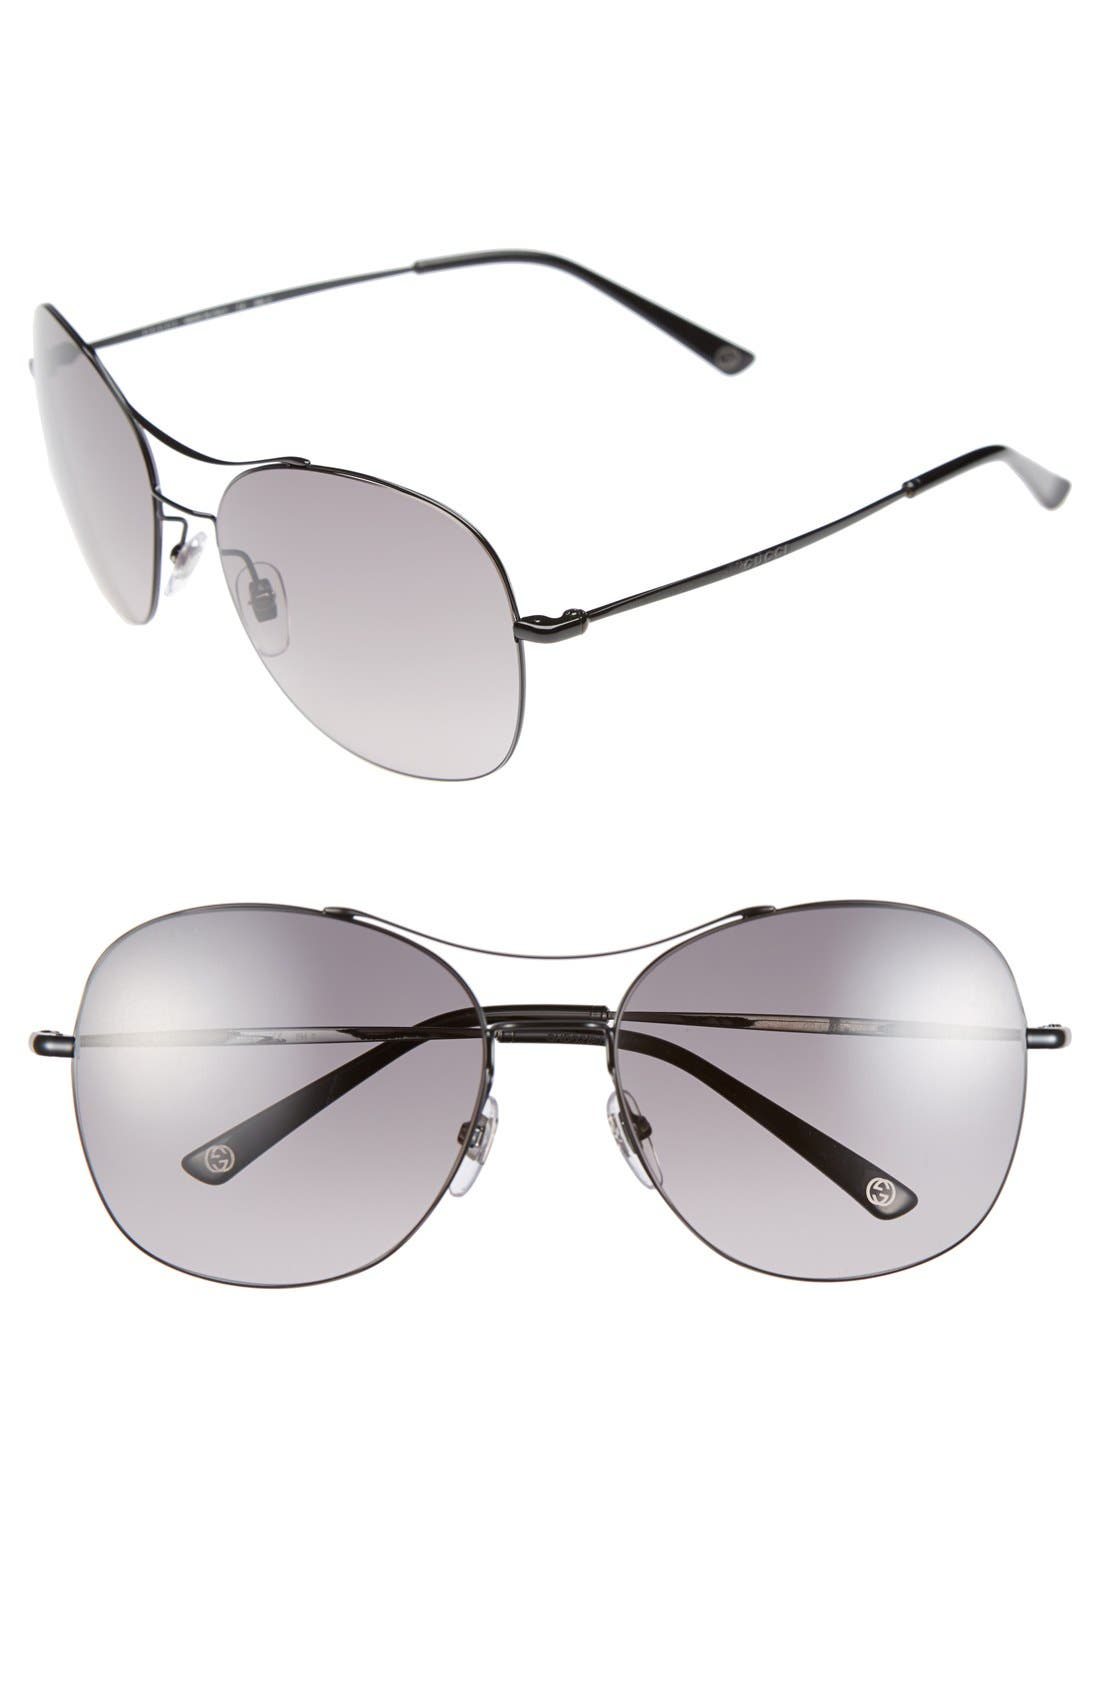 Alternate Image 1 Selected - Gucci 58mm Navigator Stainless Steel Sunglasses